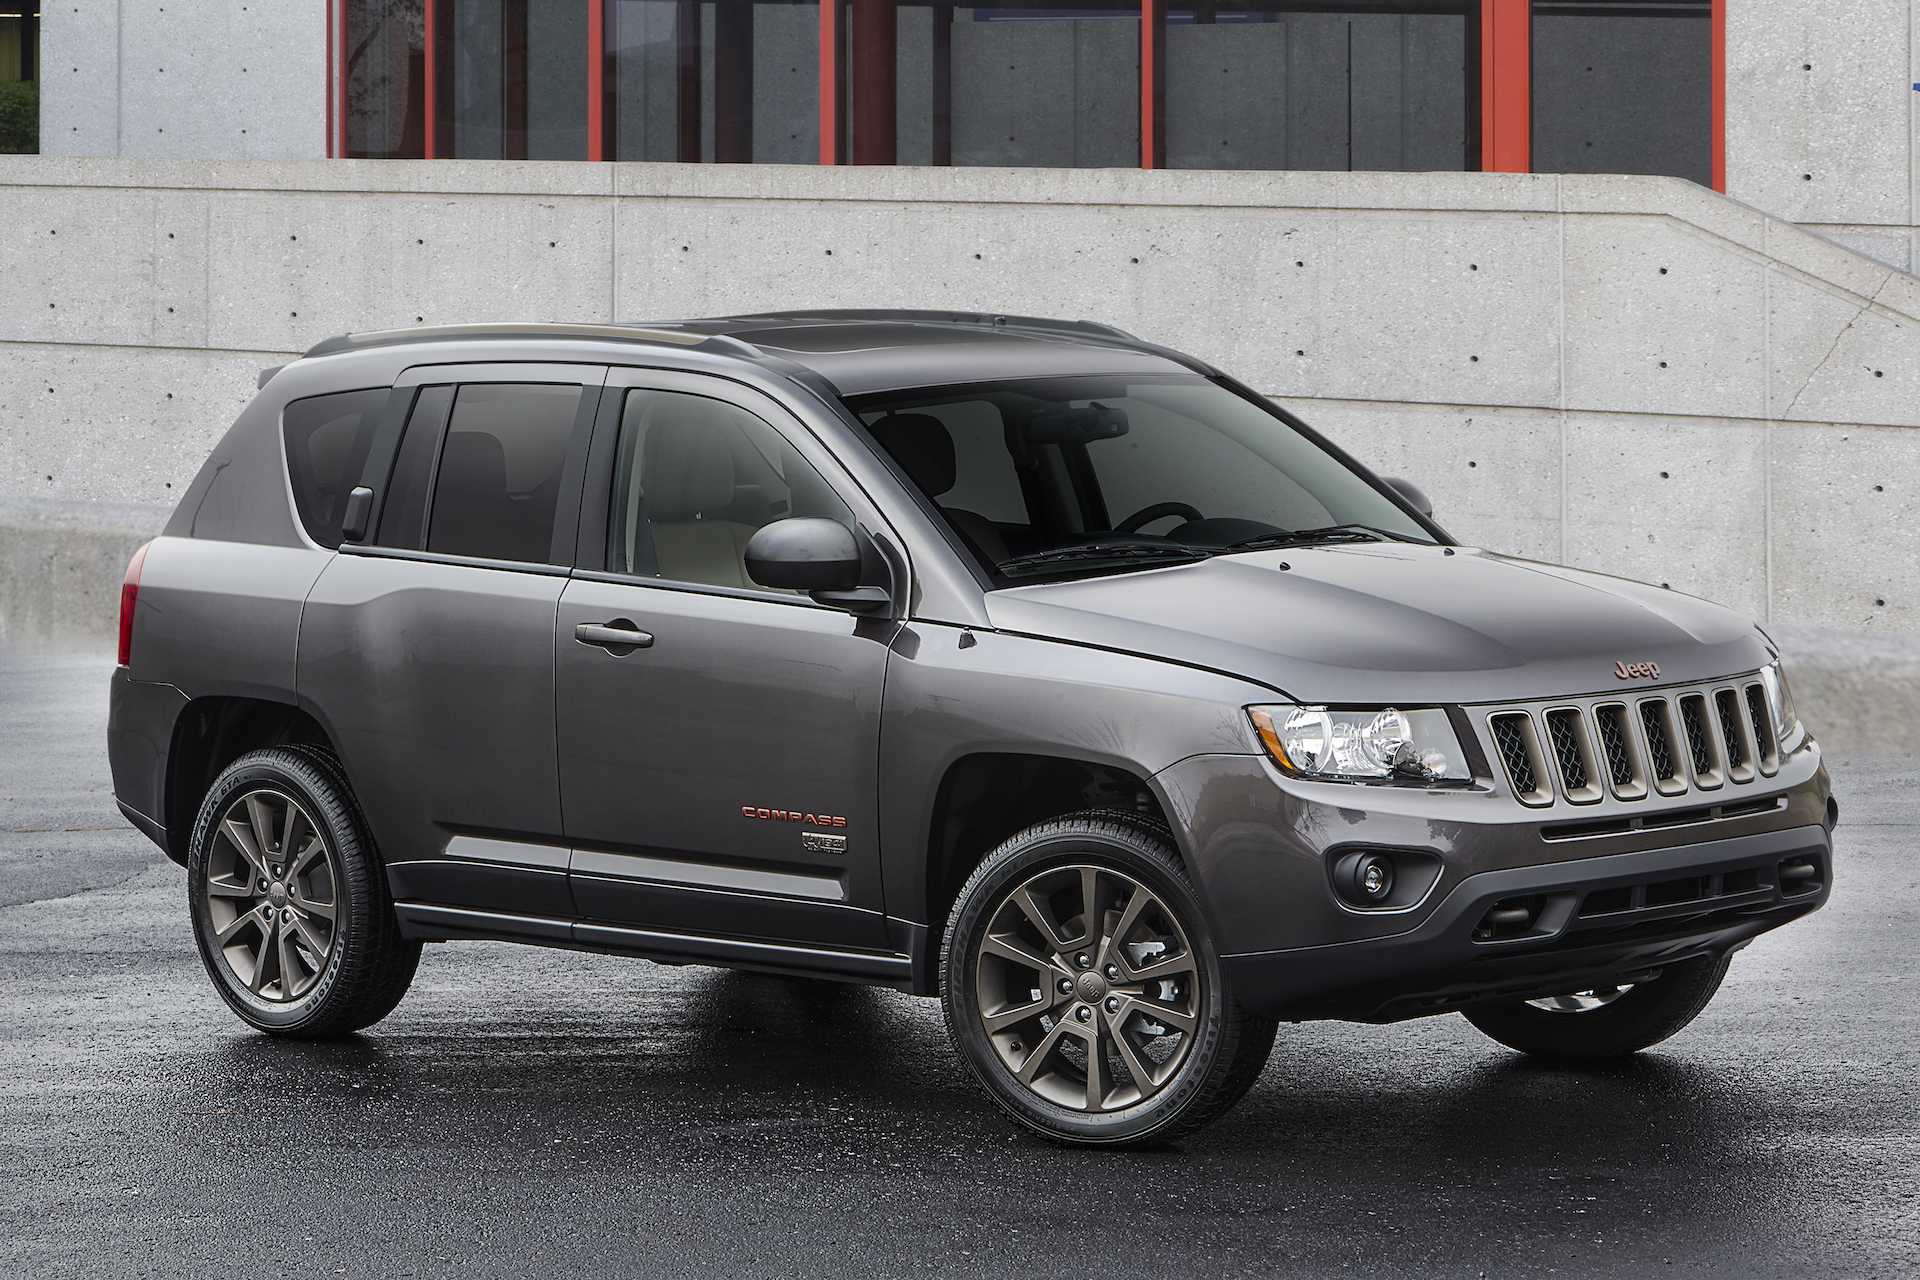 Colorado Springs Dodge >> 2017 Jeep Compass Review, Ratings, Specs, Prices, and Photos - The Car Connection